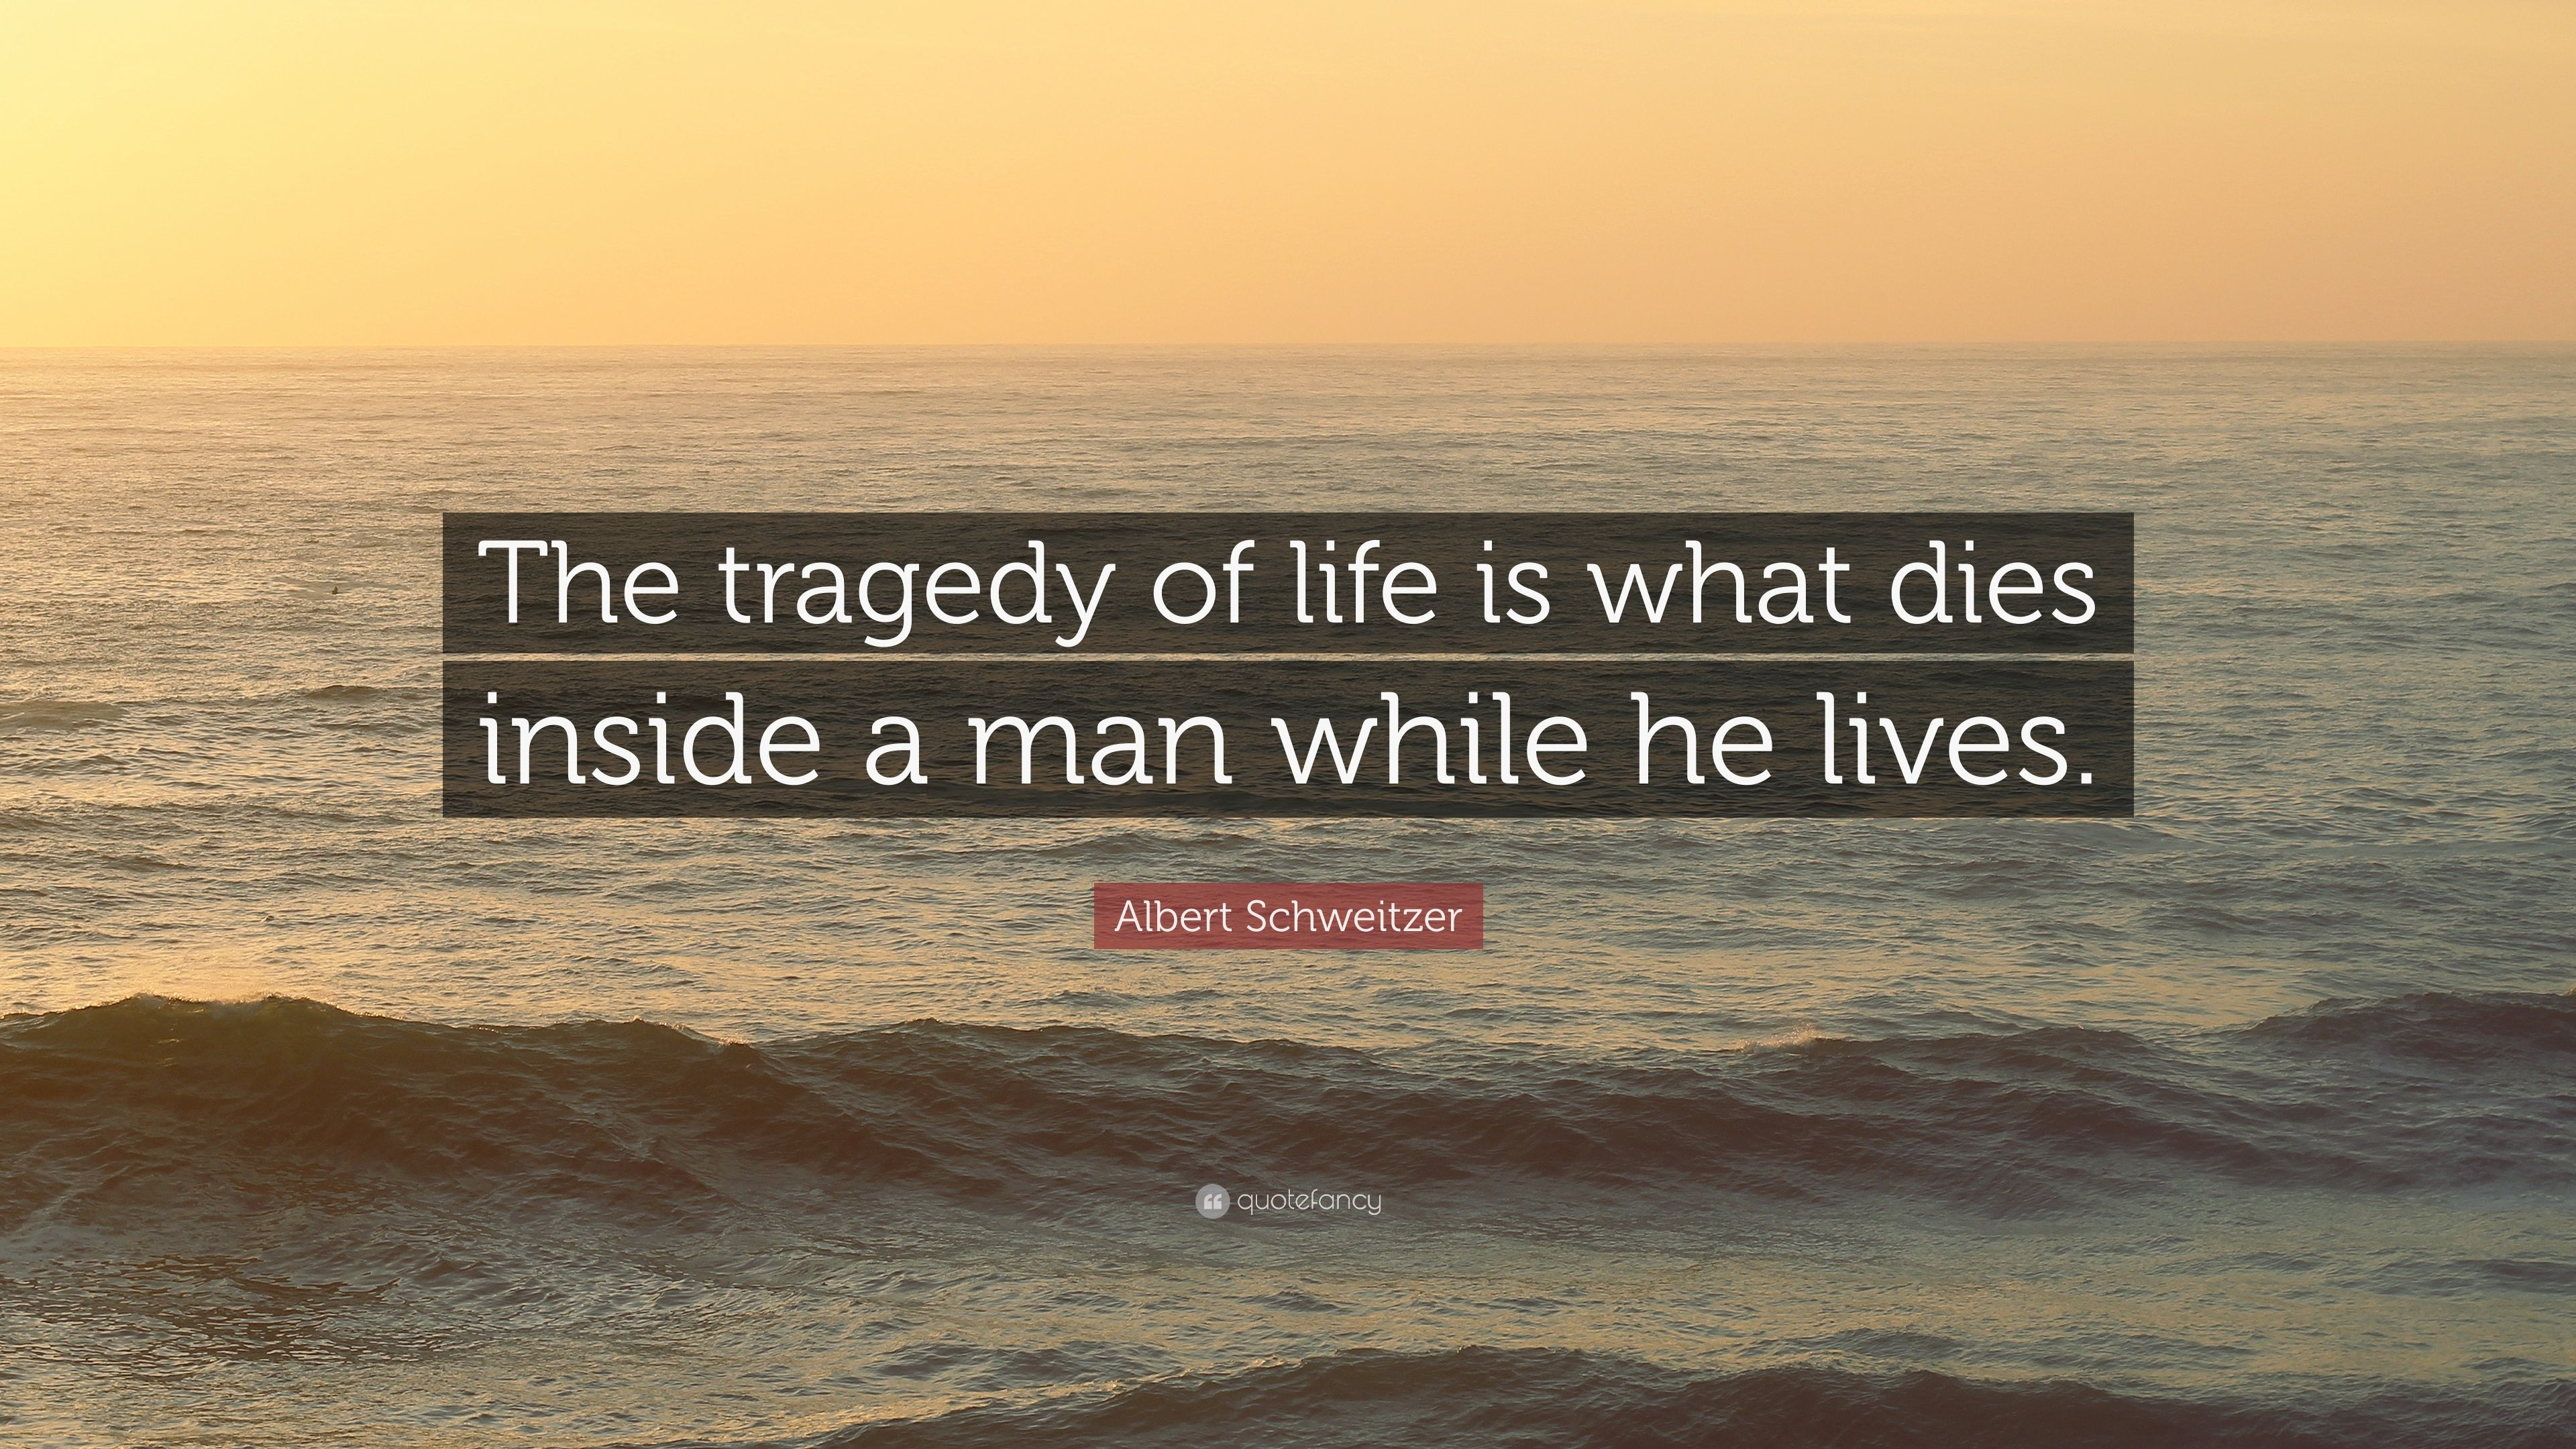 1870459-Albert-Schweitzer-Quote-The-tragedy-of-life-is-what-dies-inside-a.jpg